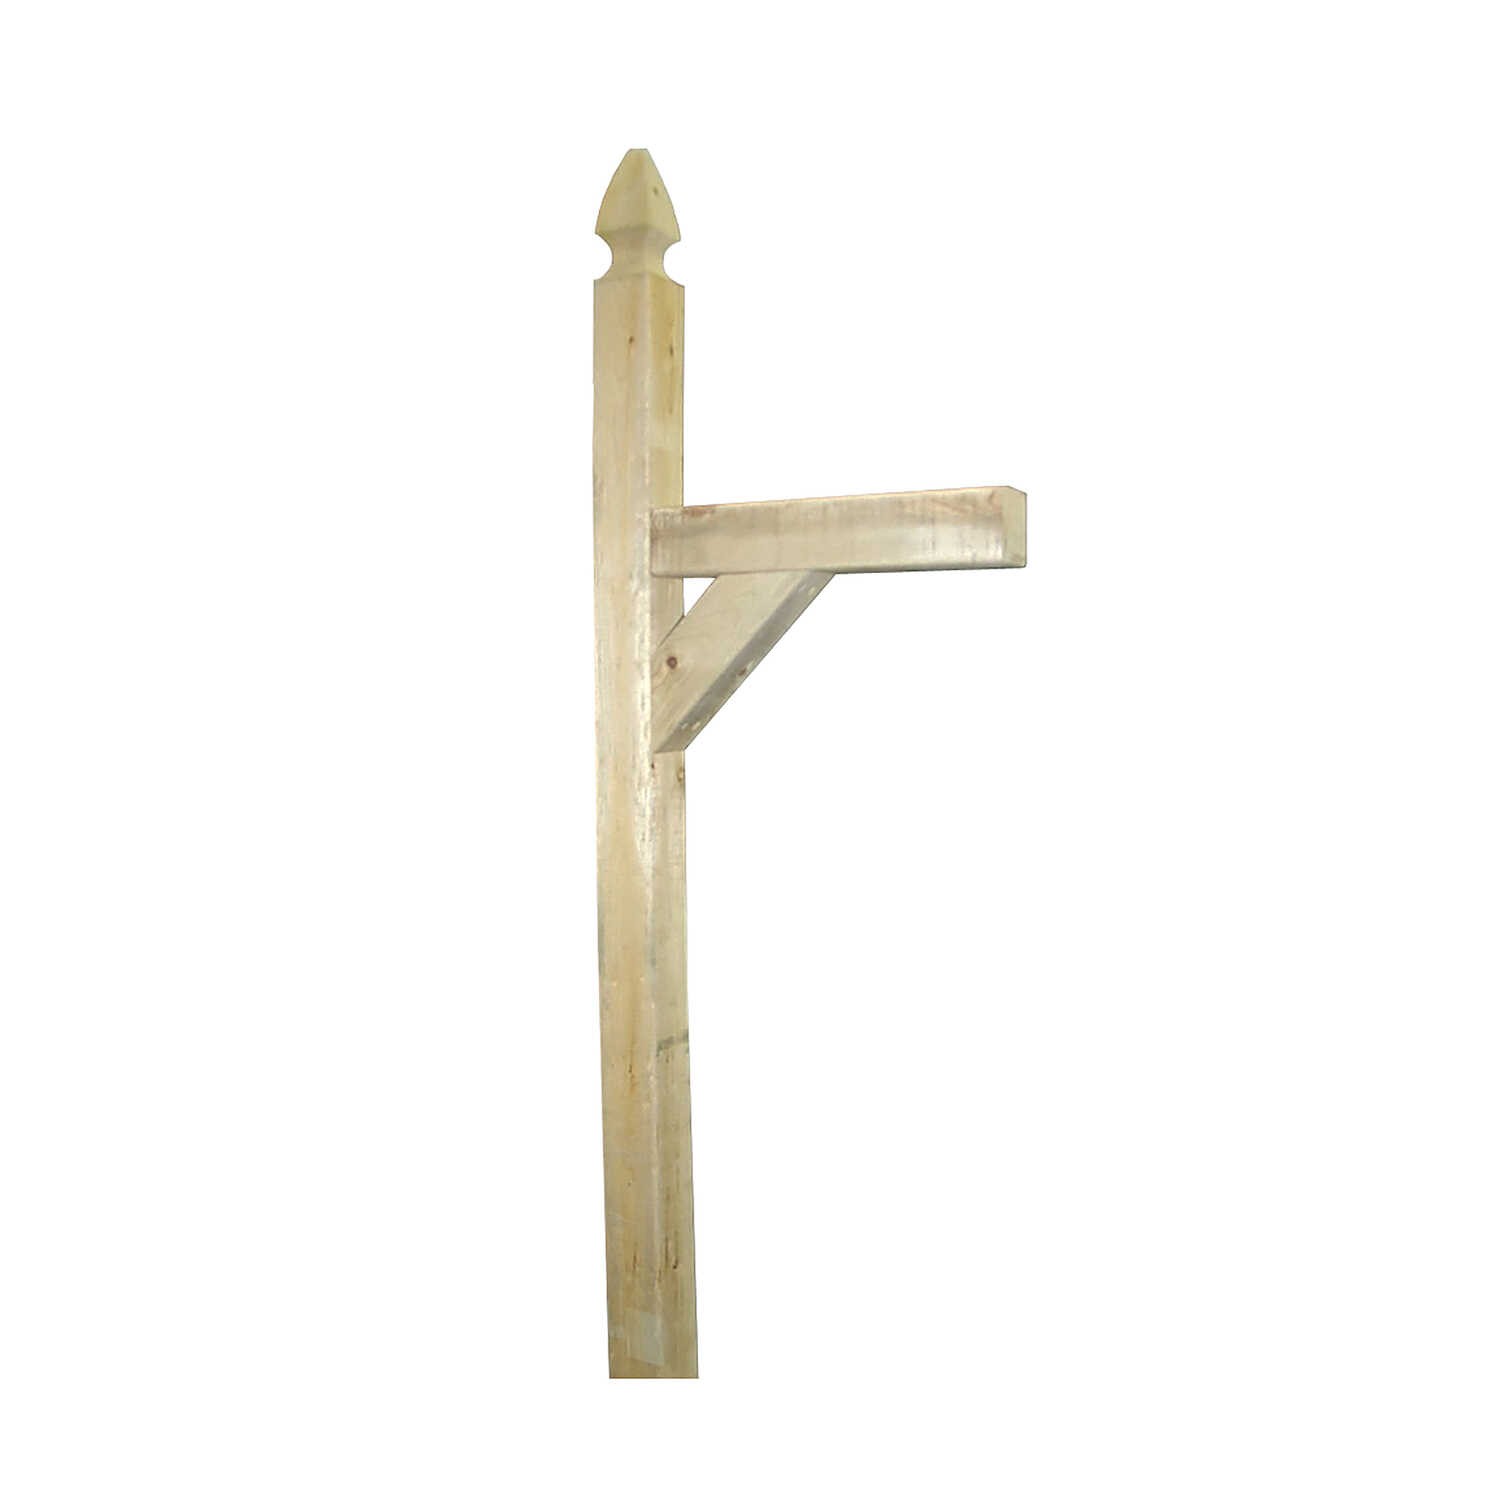 Marwood  French Gothic  72 in. H x 4 in. W Wood  Mailbox Post